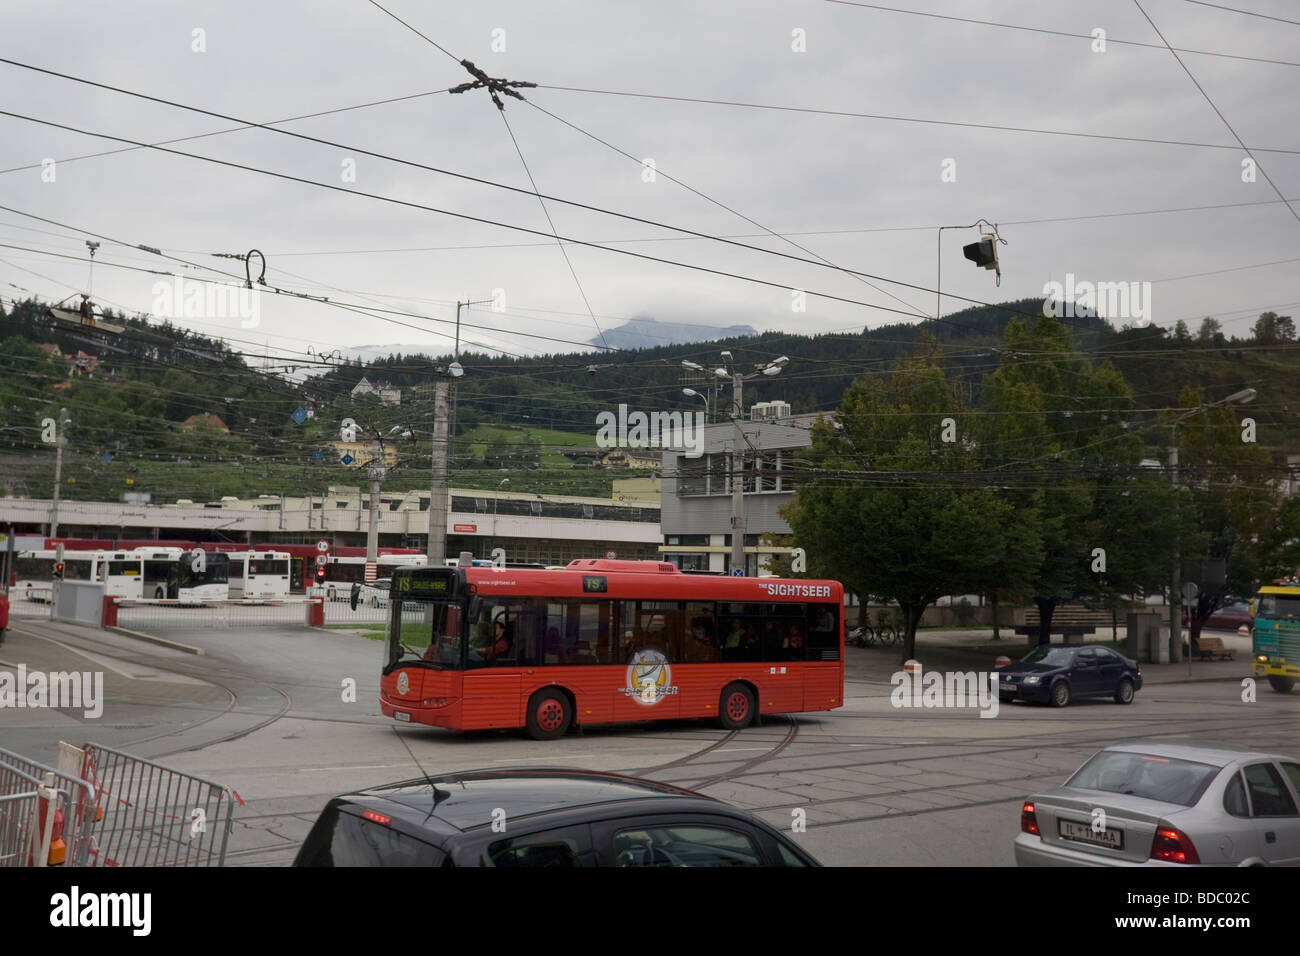 Innsbruck red bus, Austria EU Europe - Stock Image